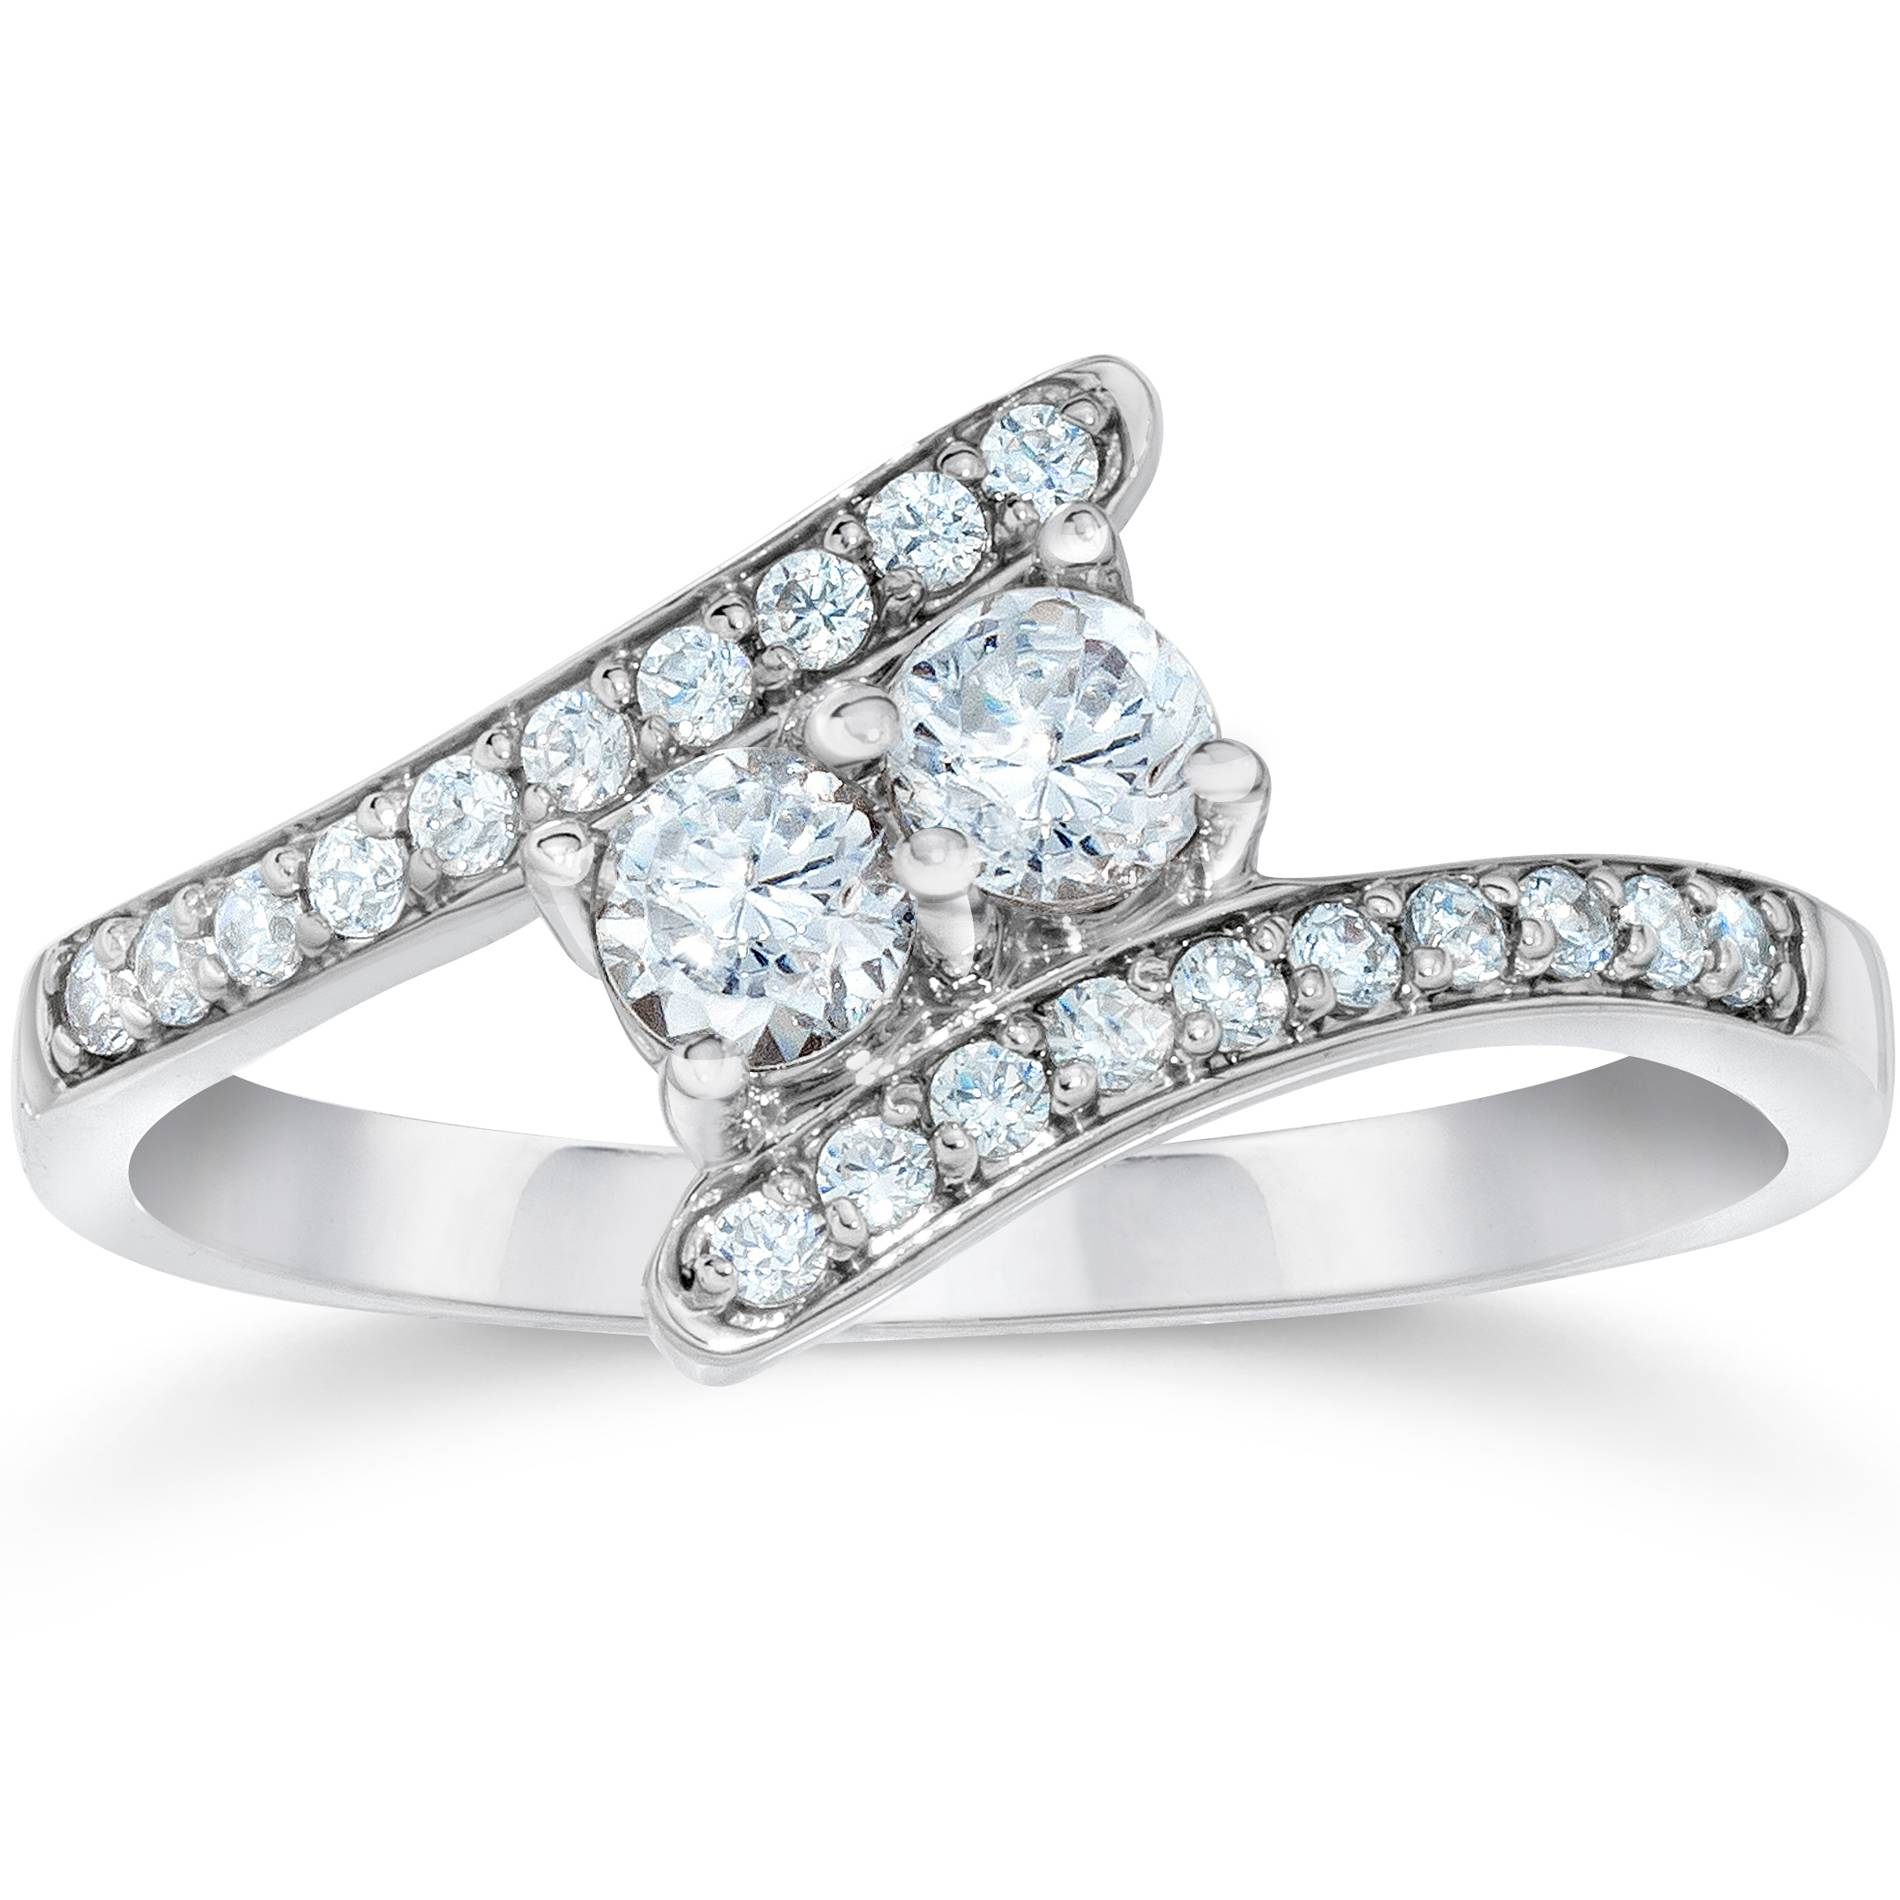 1 2Ct Forever Us Genuine Diamond Two Stone Ring White Gold Engagement Solitaire